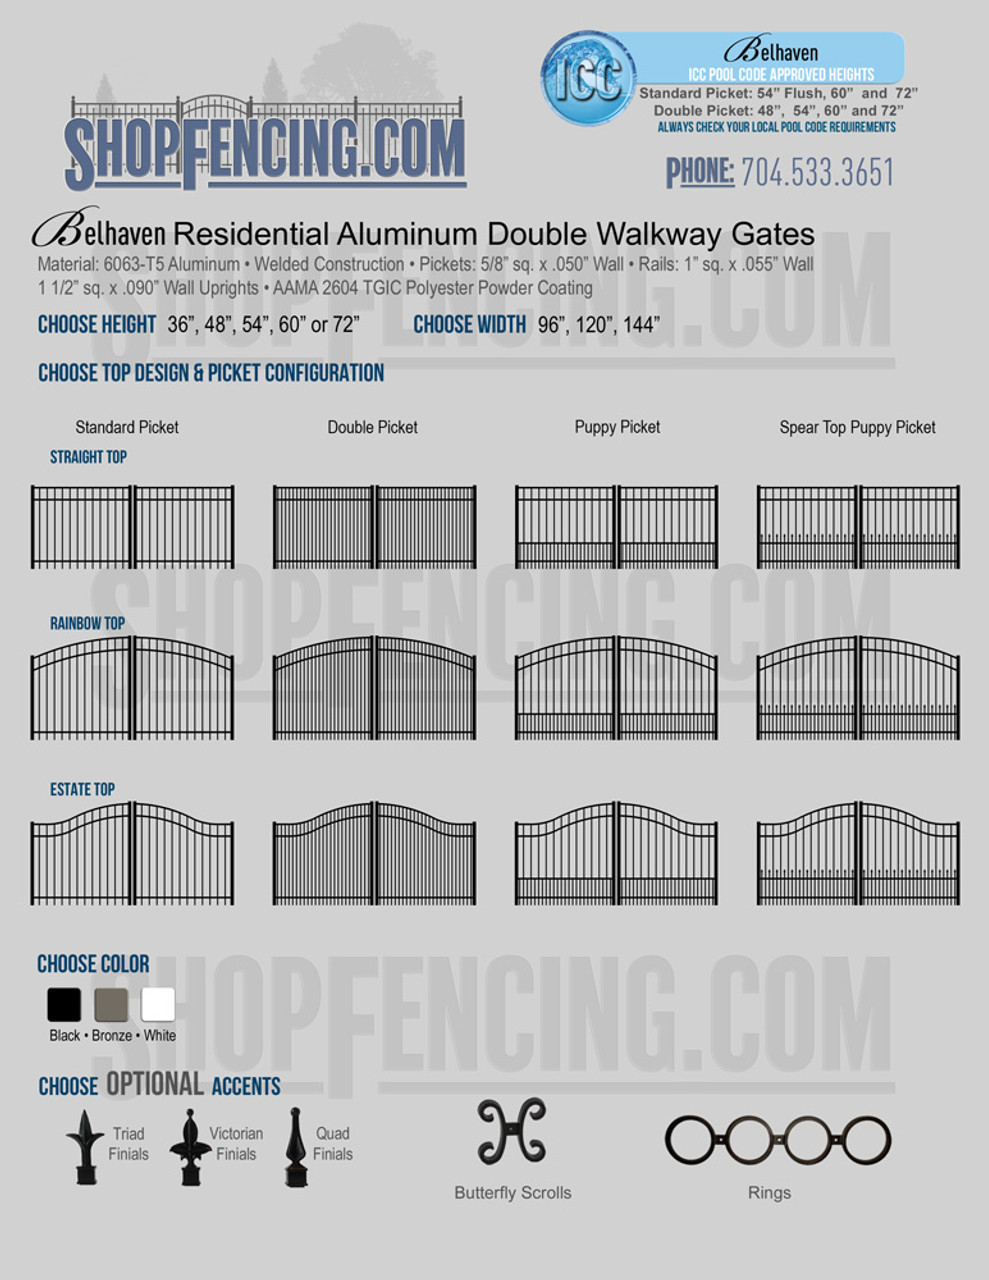 Residential Belhaven Aluminum Double Walkway Gates From ShopFencing.com